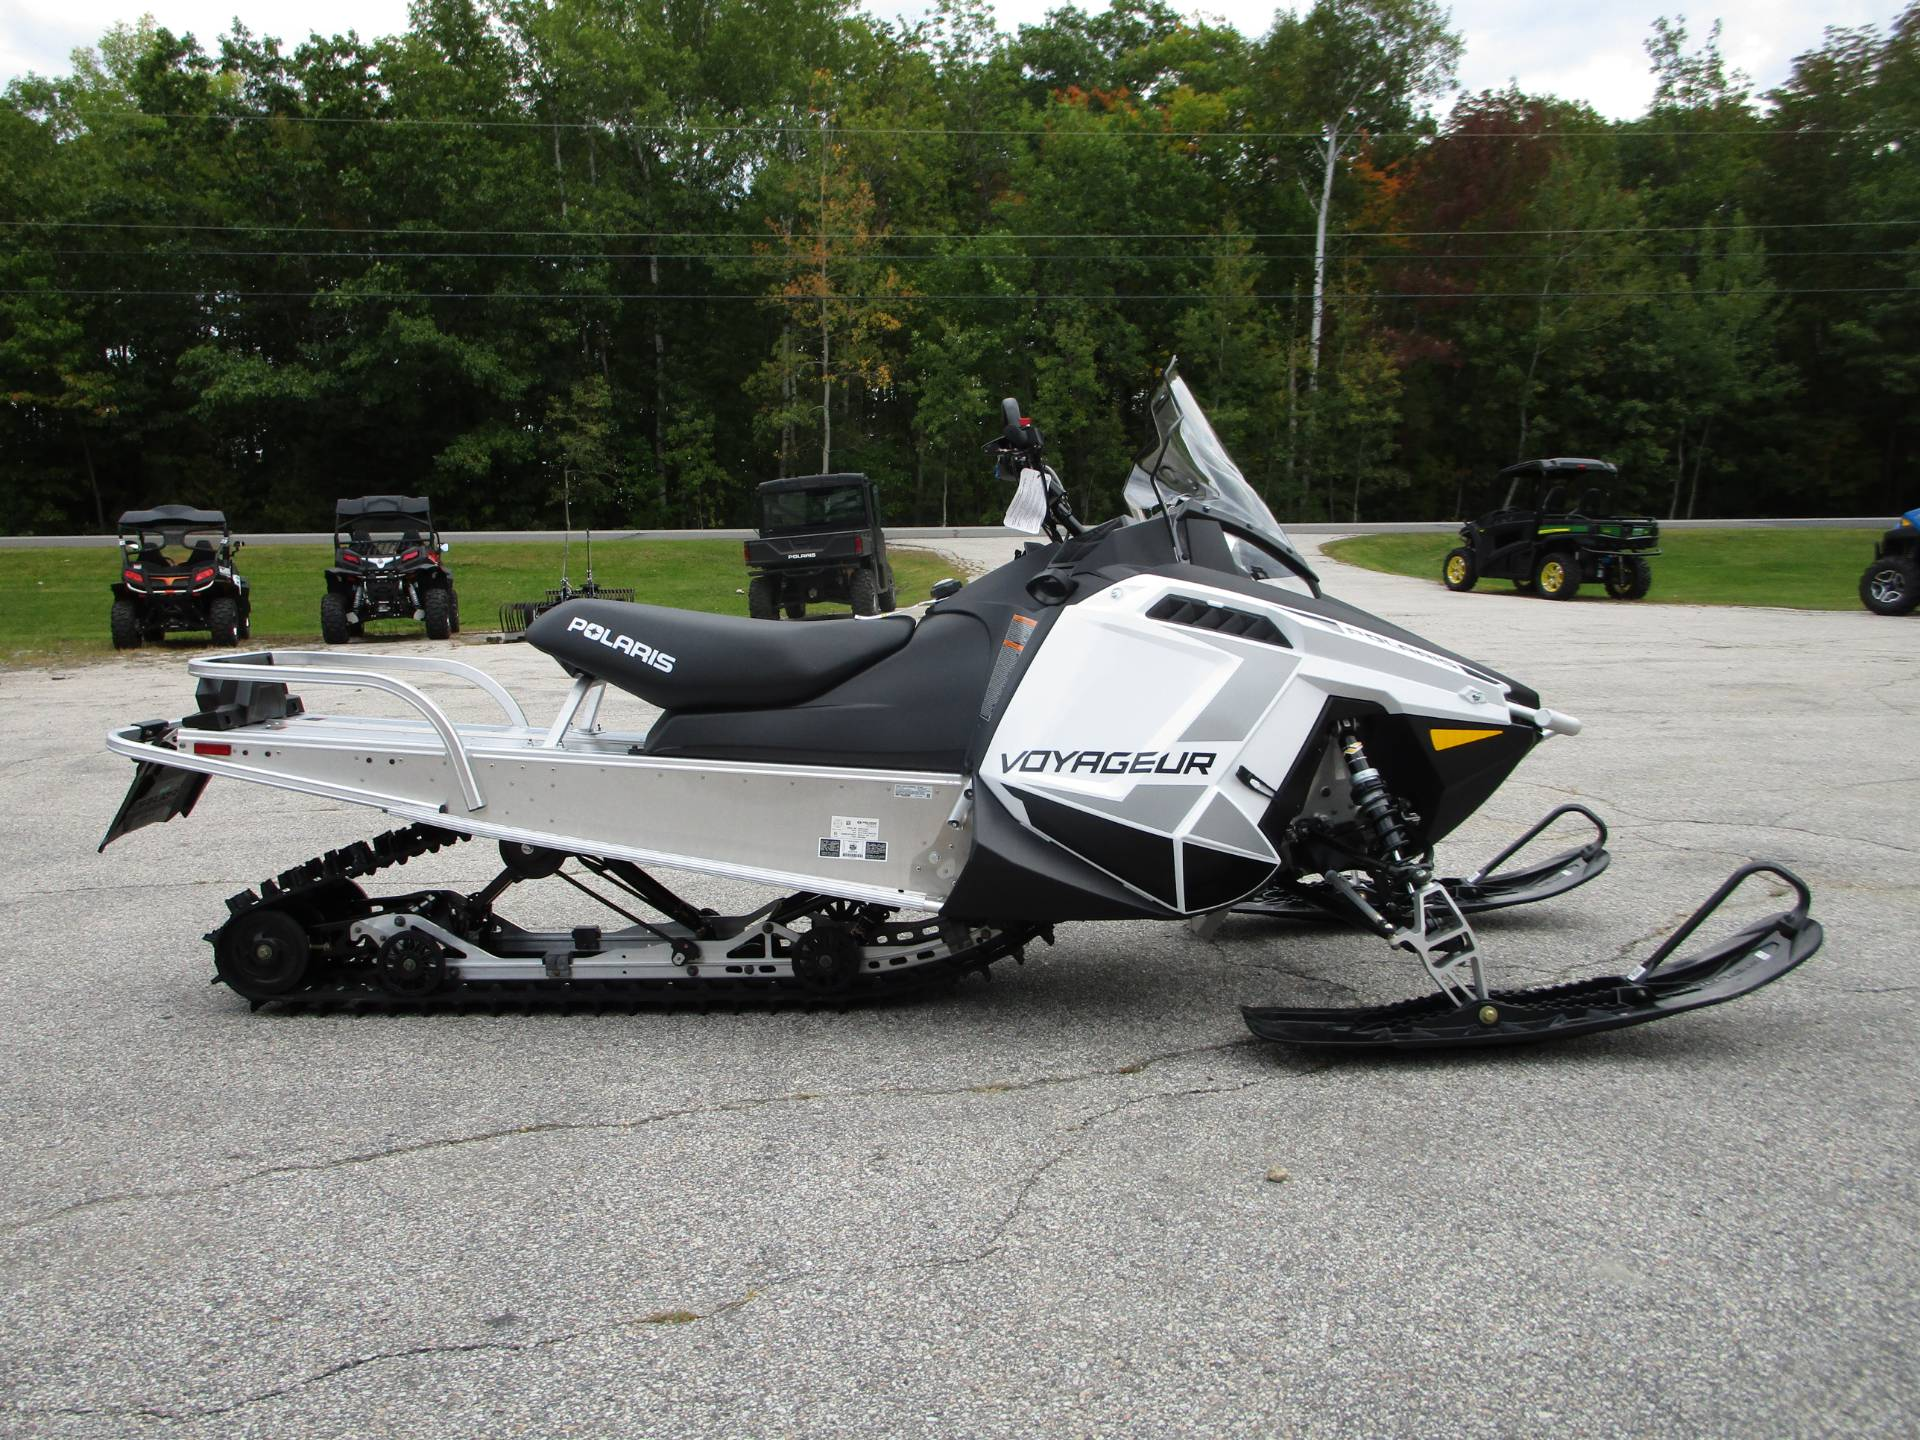 2020 Polaris 550 Voyageur 155 ES in Newport, Maine - Photo 1